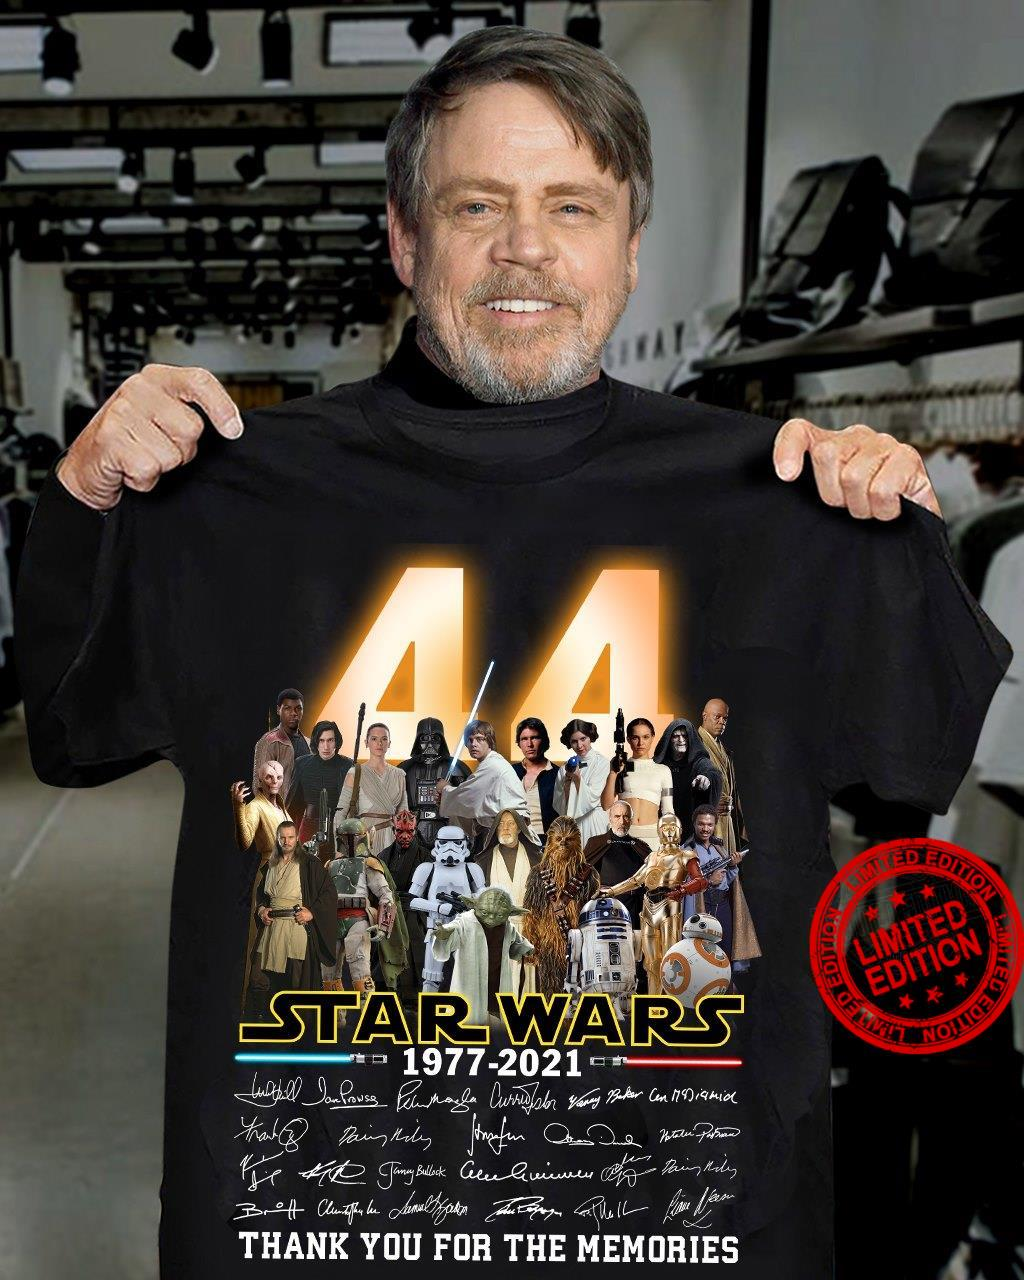 44 Years Of 1977-2021 Star Warts Thank You For The Memories Shirt